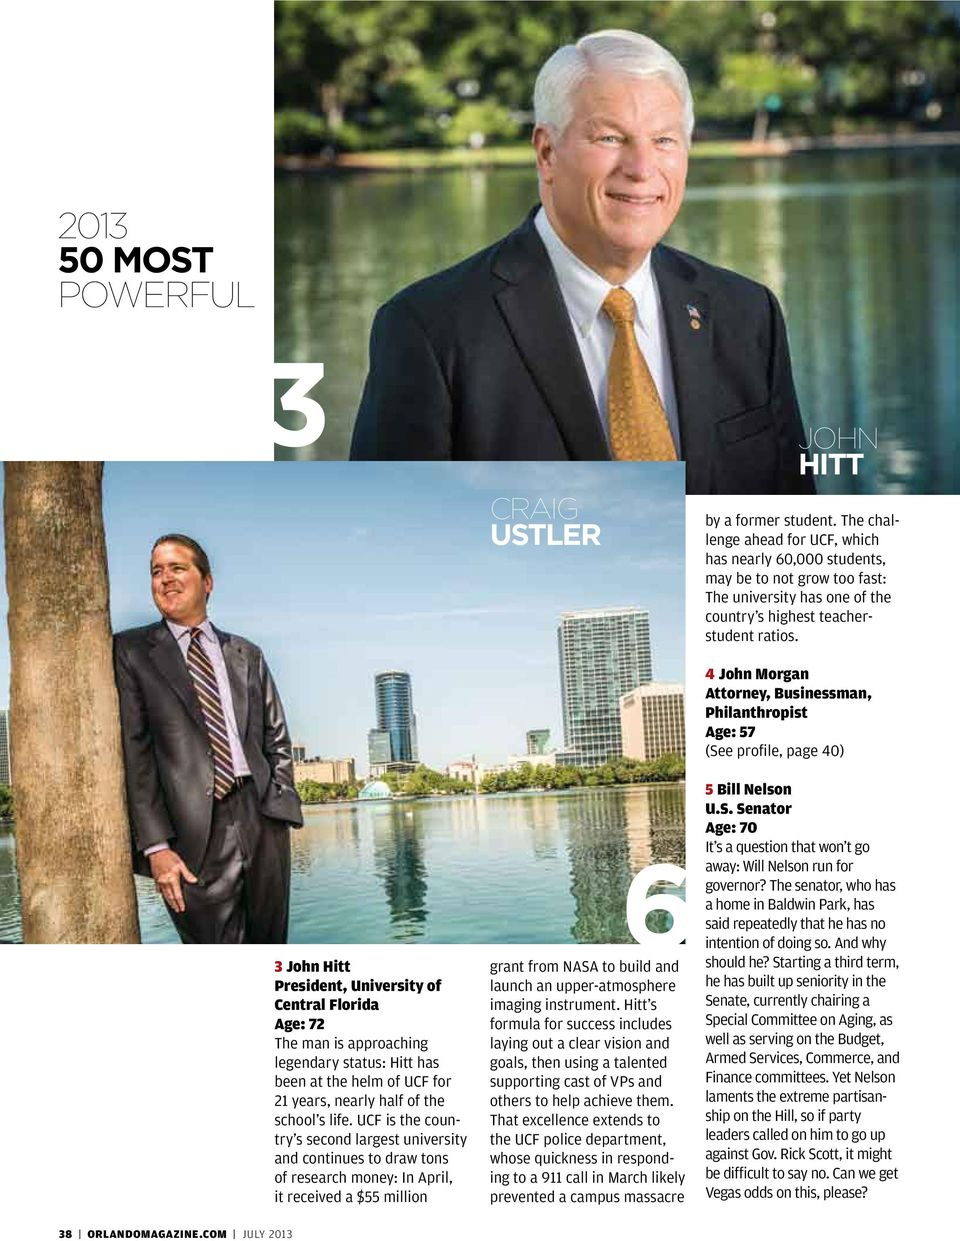 4 John Morgan Attorney, Businessman, Philanthropist Age: 57 (See profile, page 40) 3 John Hitt President, University of Central Florida Age: 72 The man is approaching legendary status: Hitt has been